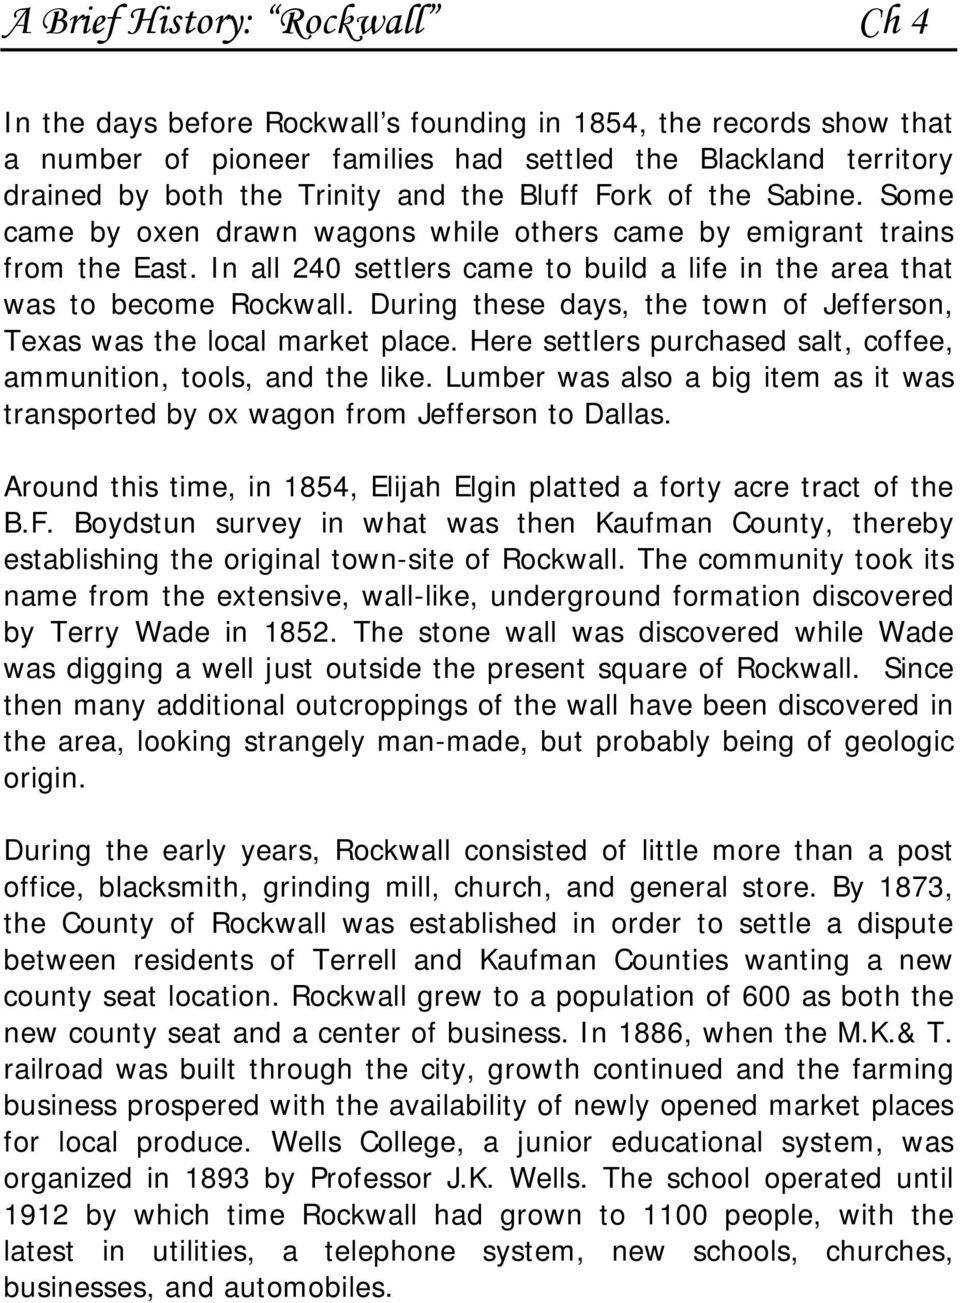 During these days, the town of Jefferson, Texas was the local market place. Here settlers purchased salt, coffee, ammunition, tools, and the like.